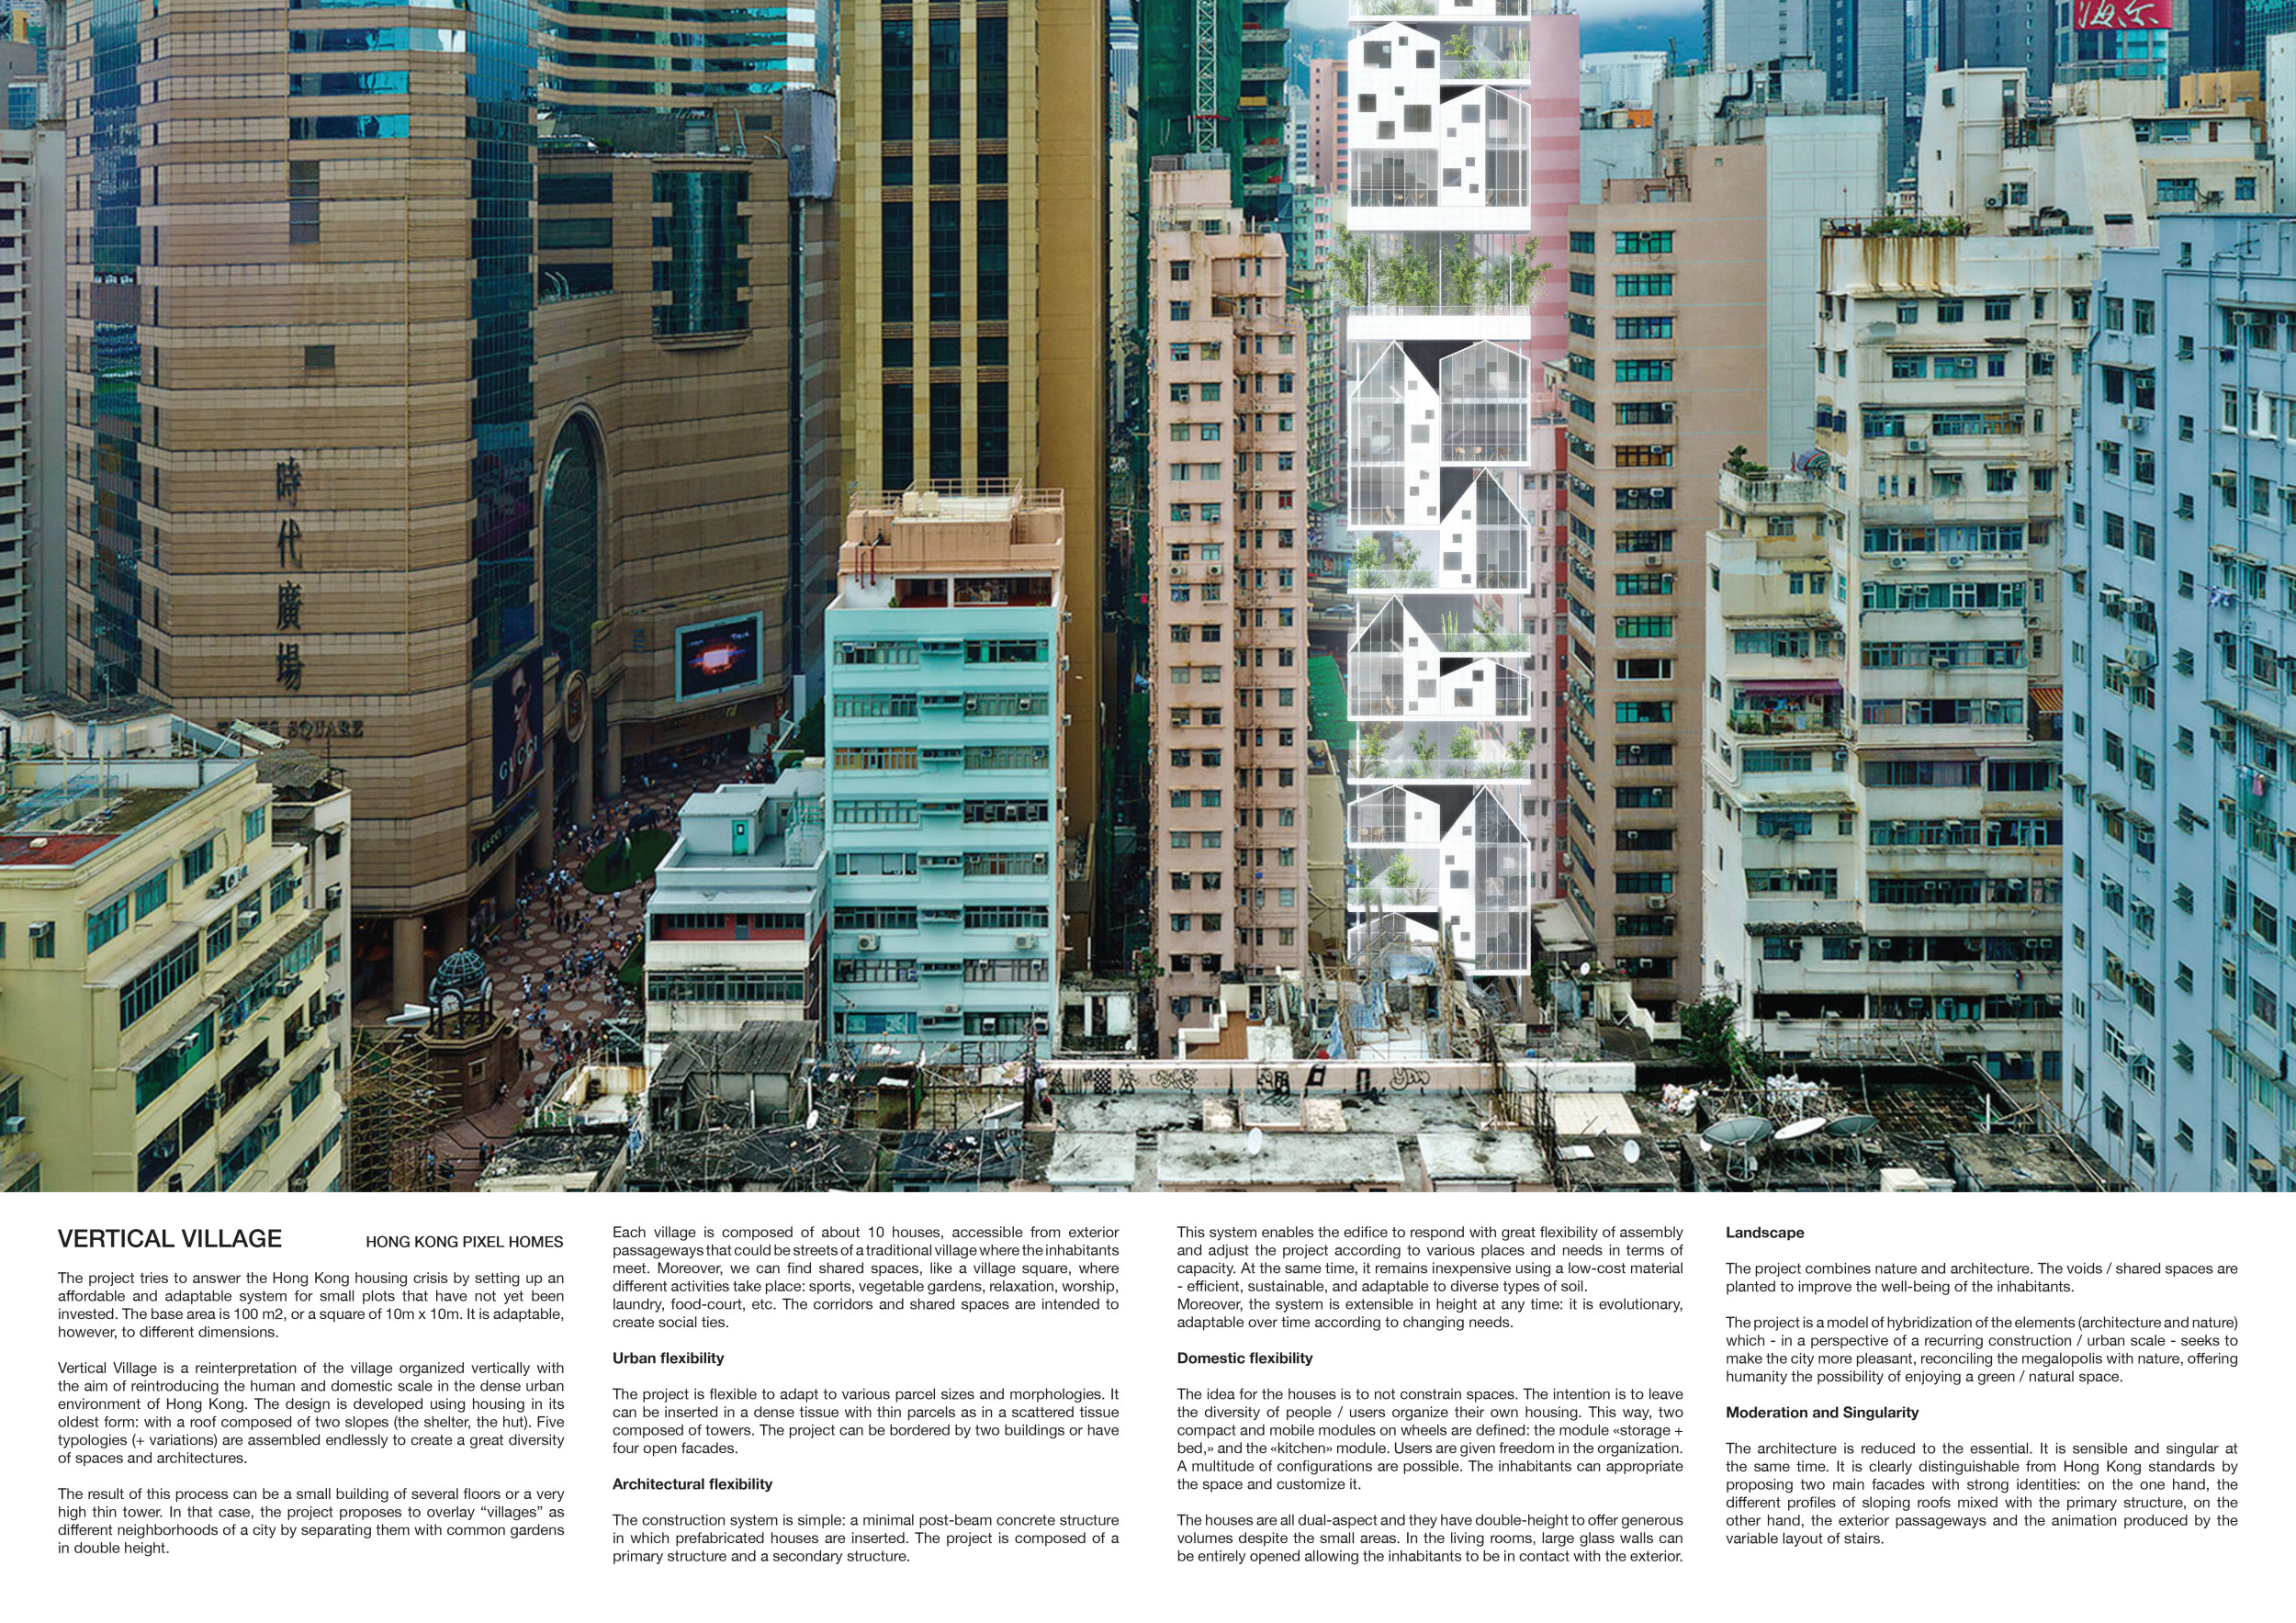 the housing problem in hong kong essay Essay on thesis draft proposal: study of residential price in hong kong - the proposed title would be 'study of residential price in hong kong' 2 brief introduction/background.